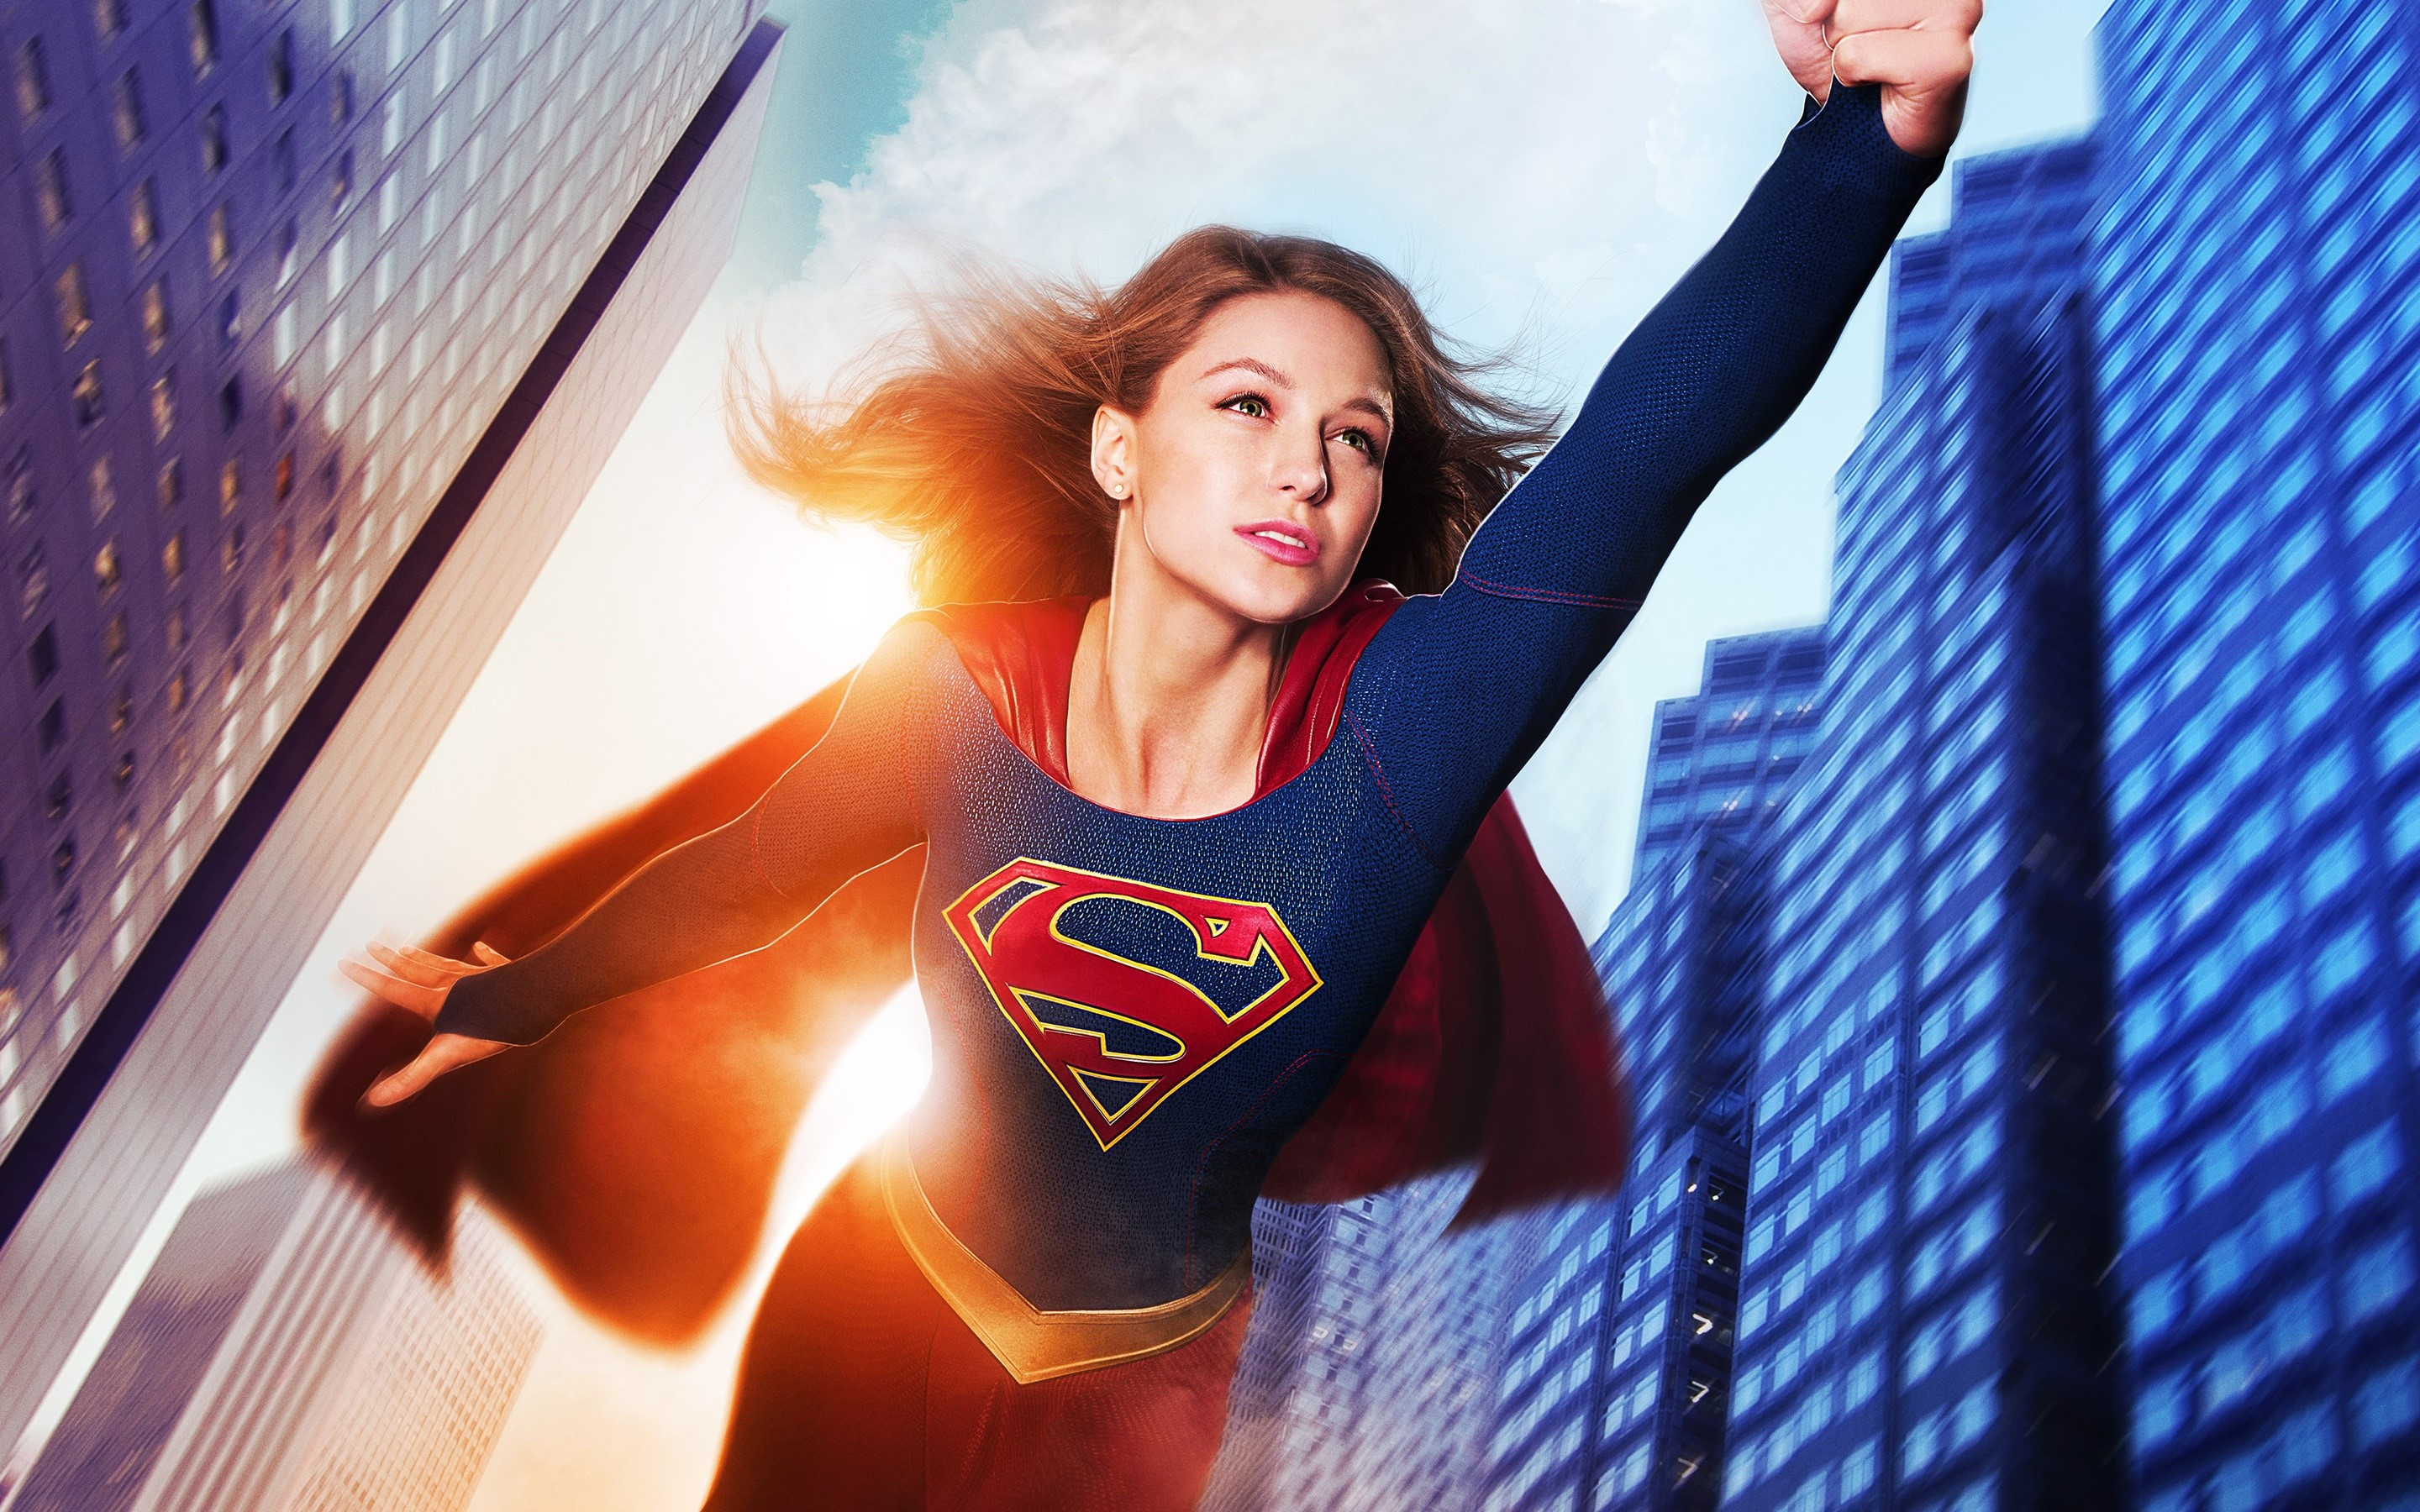 Wallpaper Melissa Benoist as Supergirl